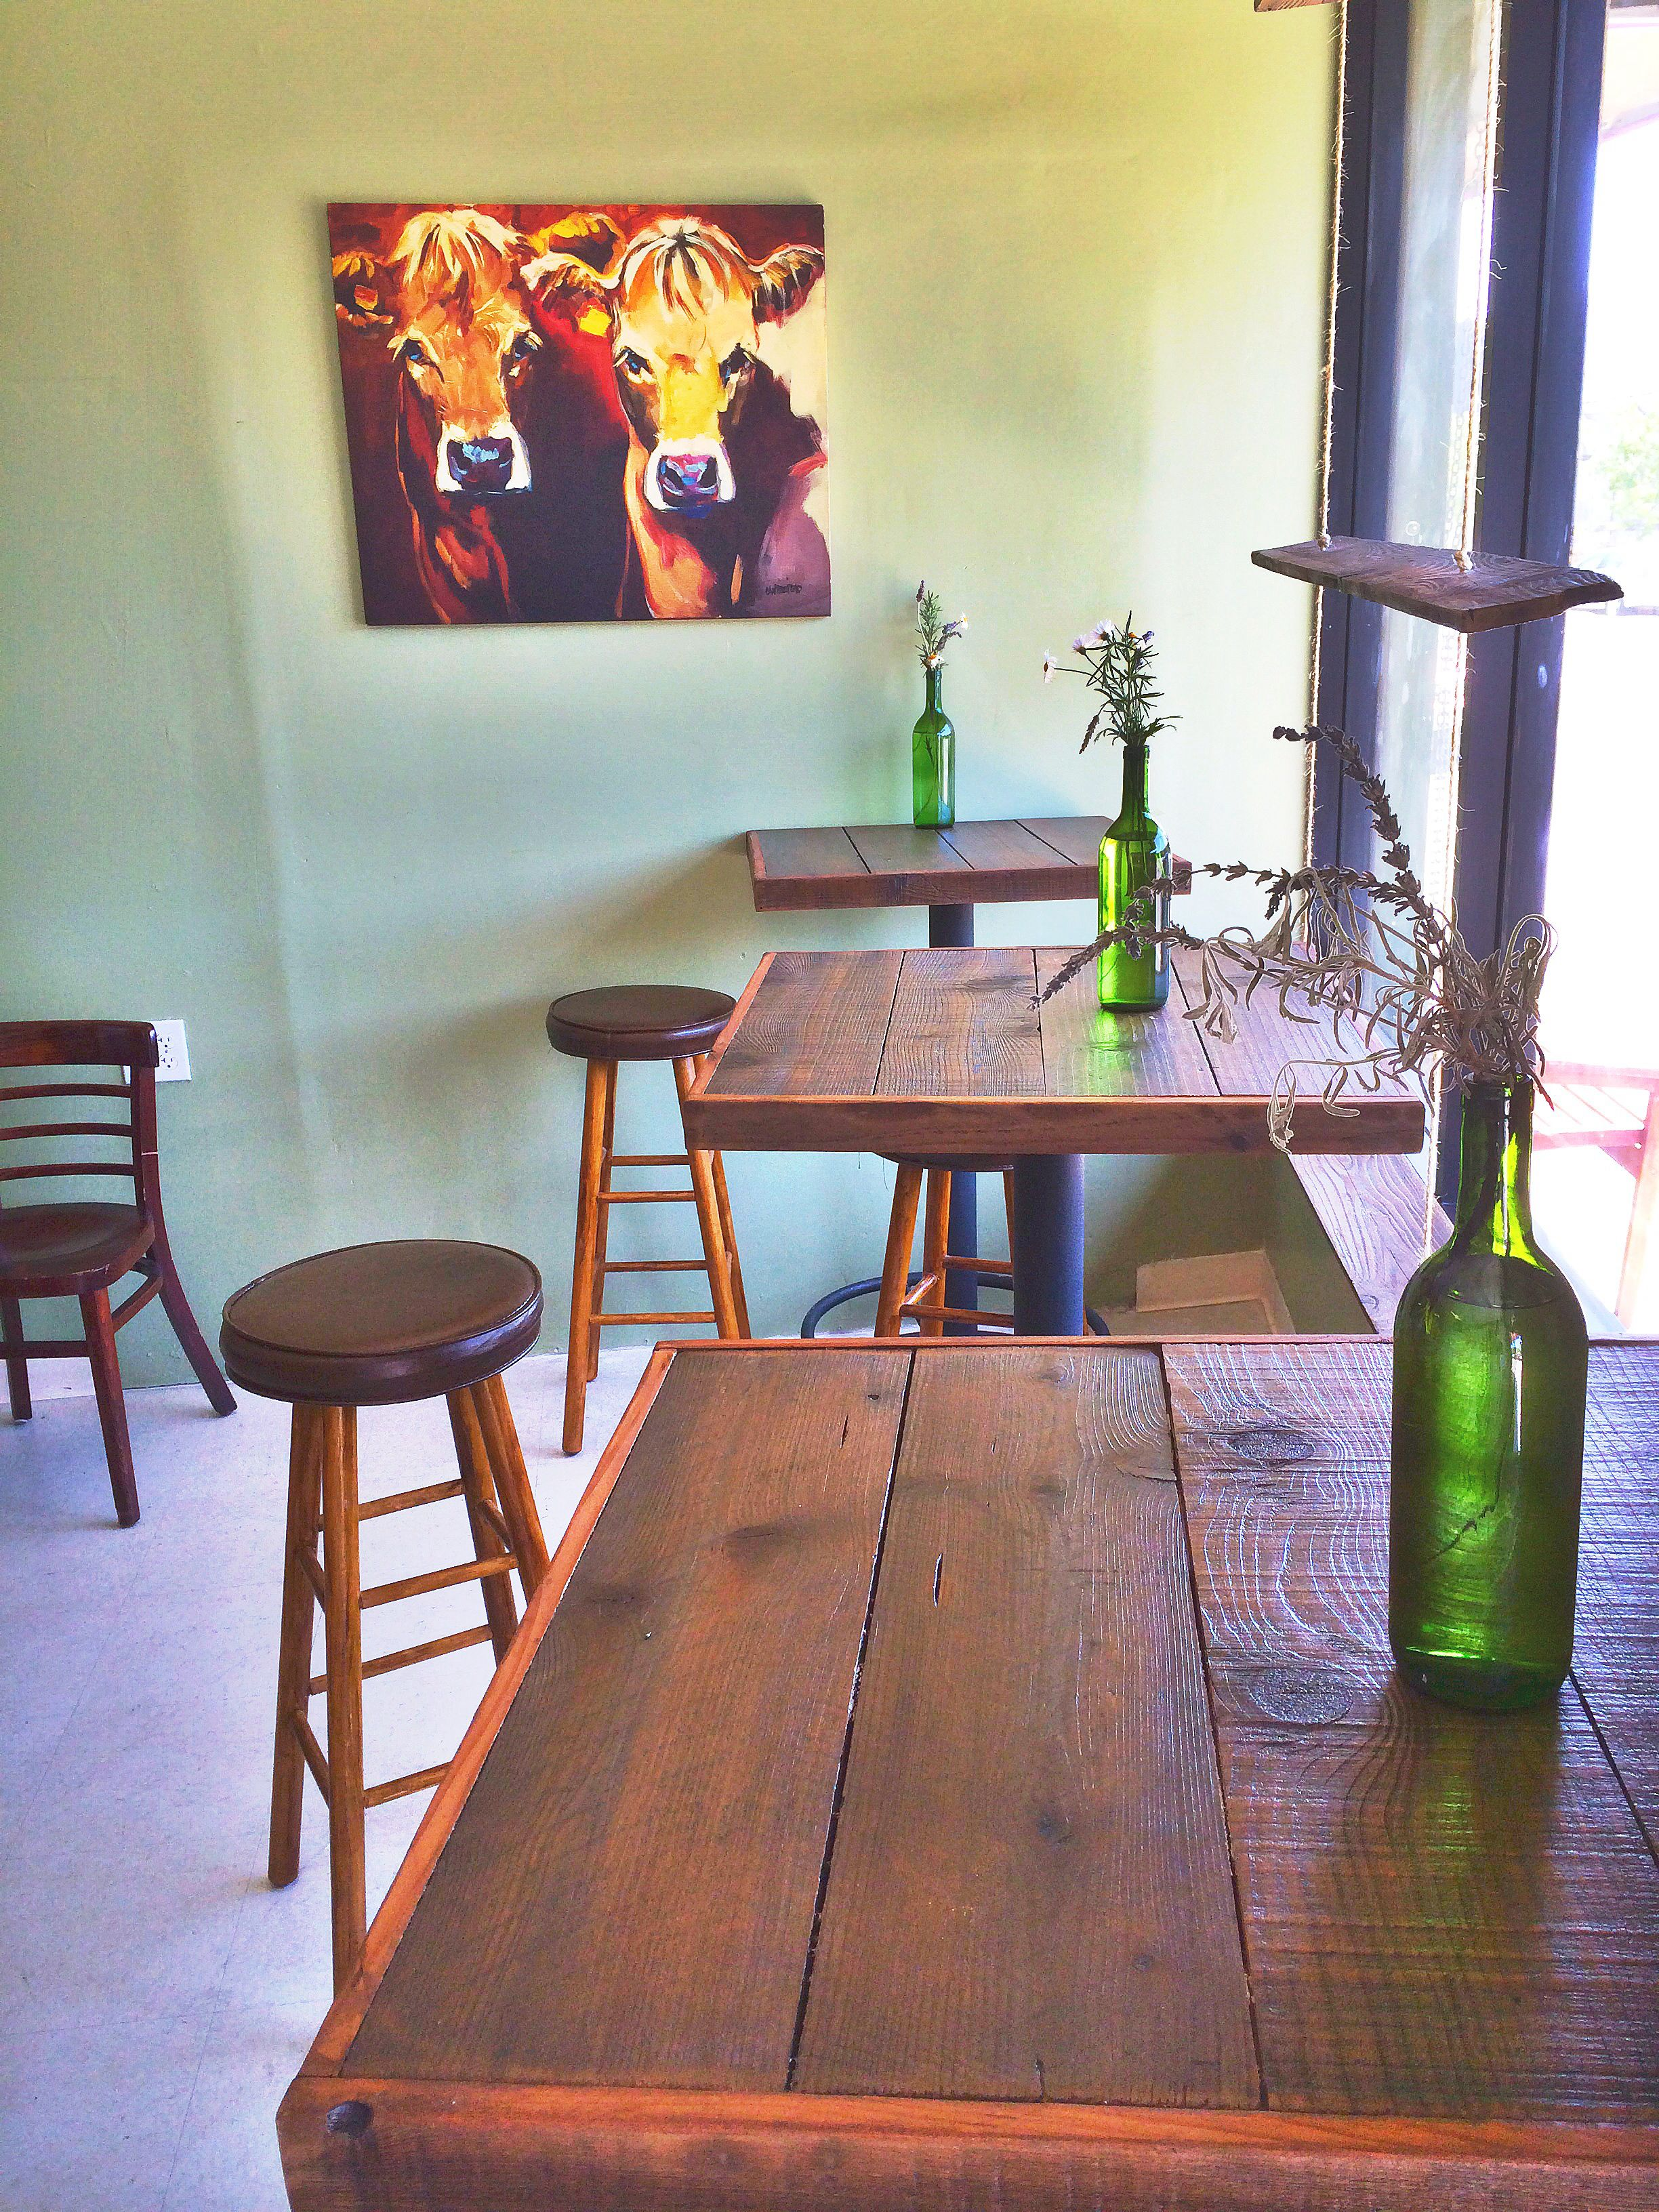 Cafe Tables By Urban Mining Co In The Sf Bay Area Reclaimed Wood